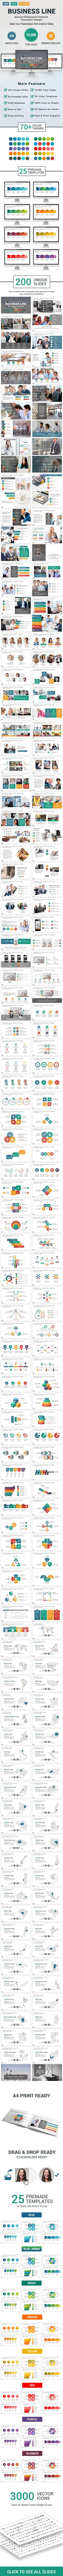 Business Line PowerPoint Presentation Template. Download here: https://graphicriver.net/item/business-line-powerpoint-presentation-template/17676417?ref=ksioks